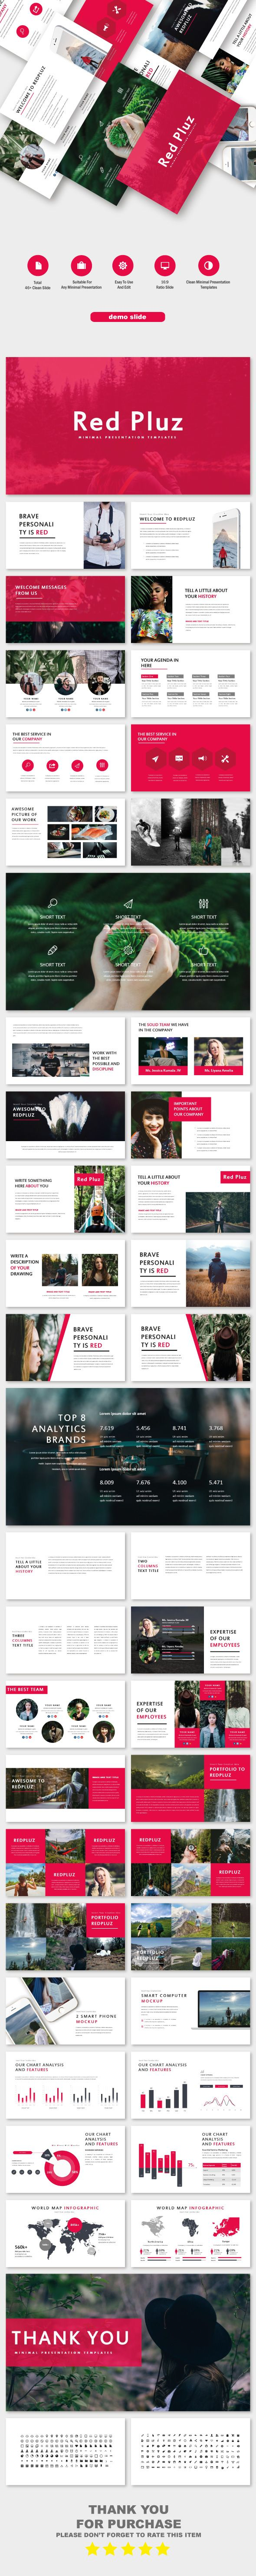 Red pluz multipurpose powerpoint templates amazing awesome slide red pluz multipurpose powerpoint templates amazing awesome slide powerpoint presentation toneelgroepblik Images